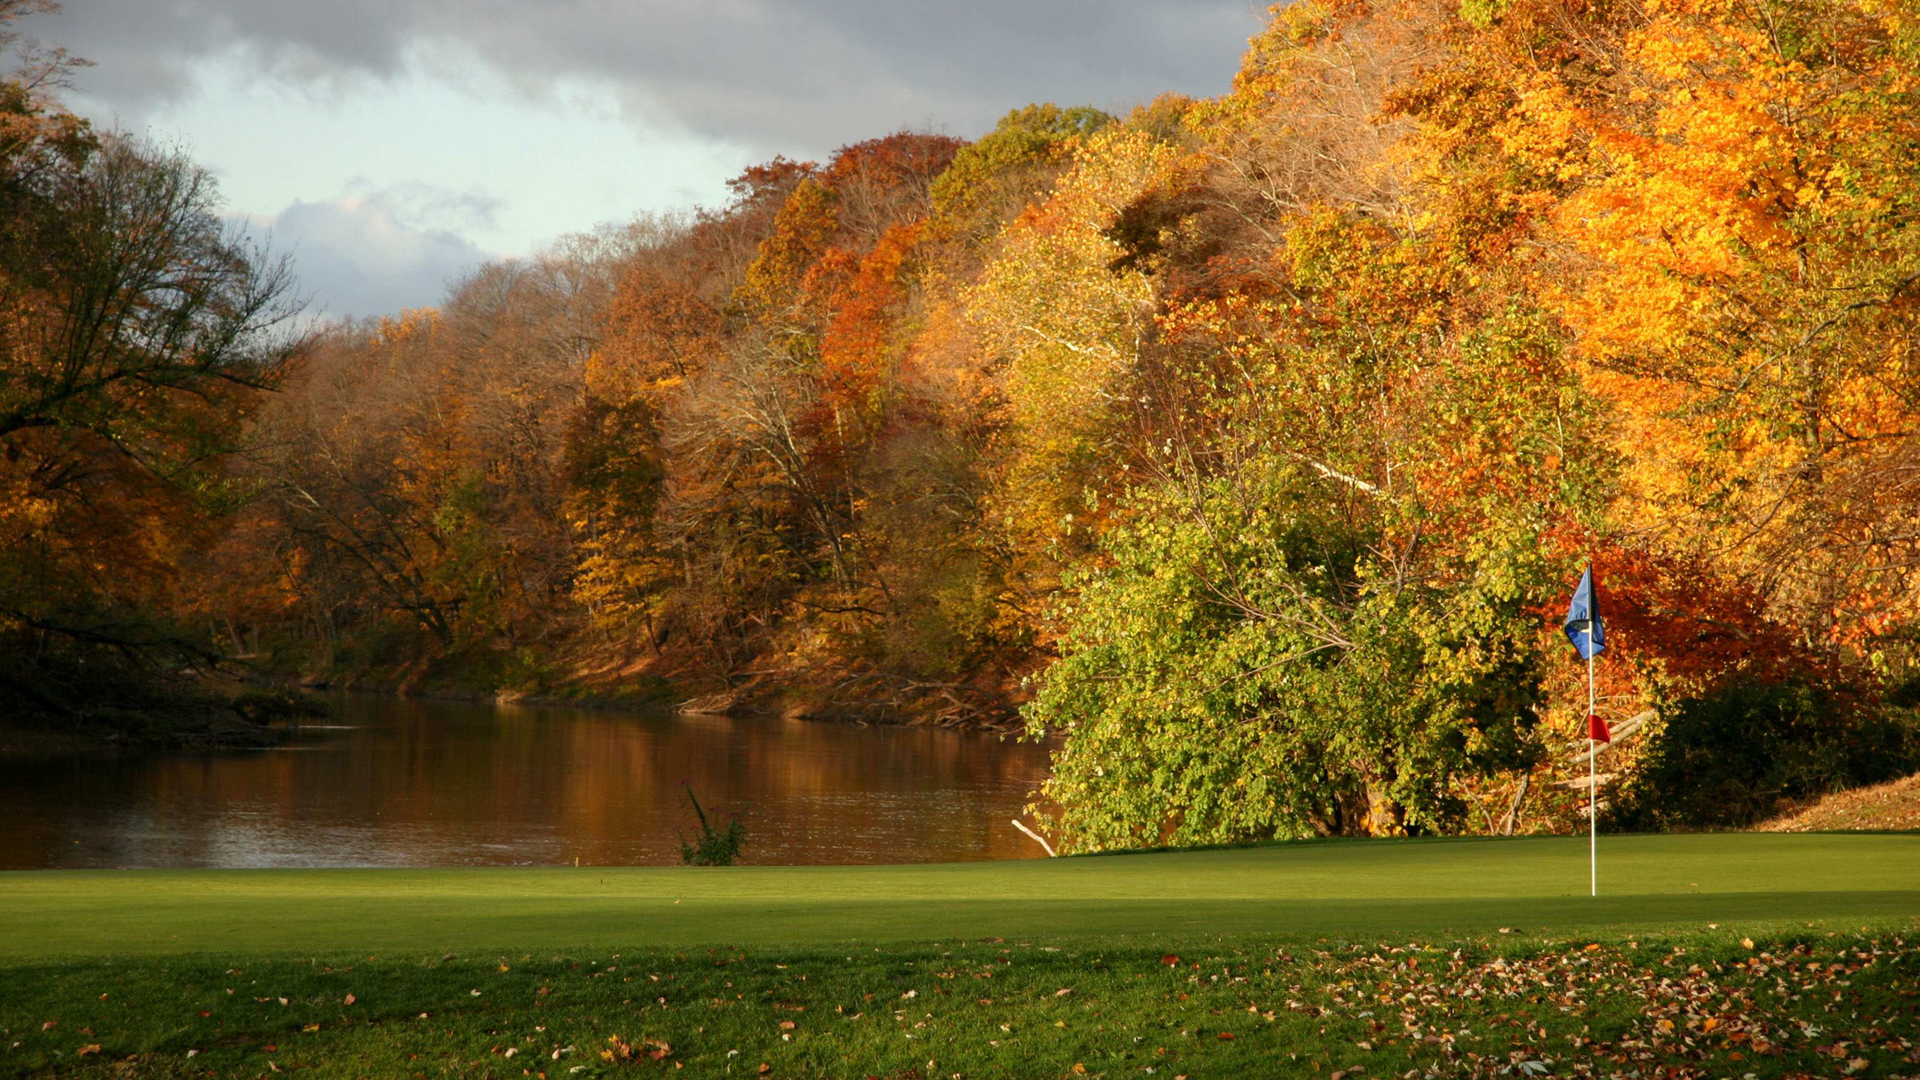 High Resolution Fall Wallpaper: Free Download Of Autumn Golf Course Wallpaper In 1080p